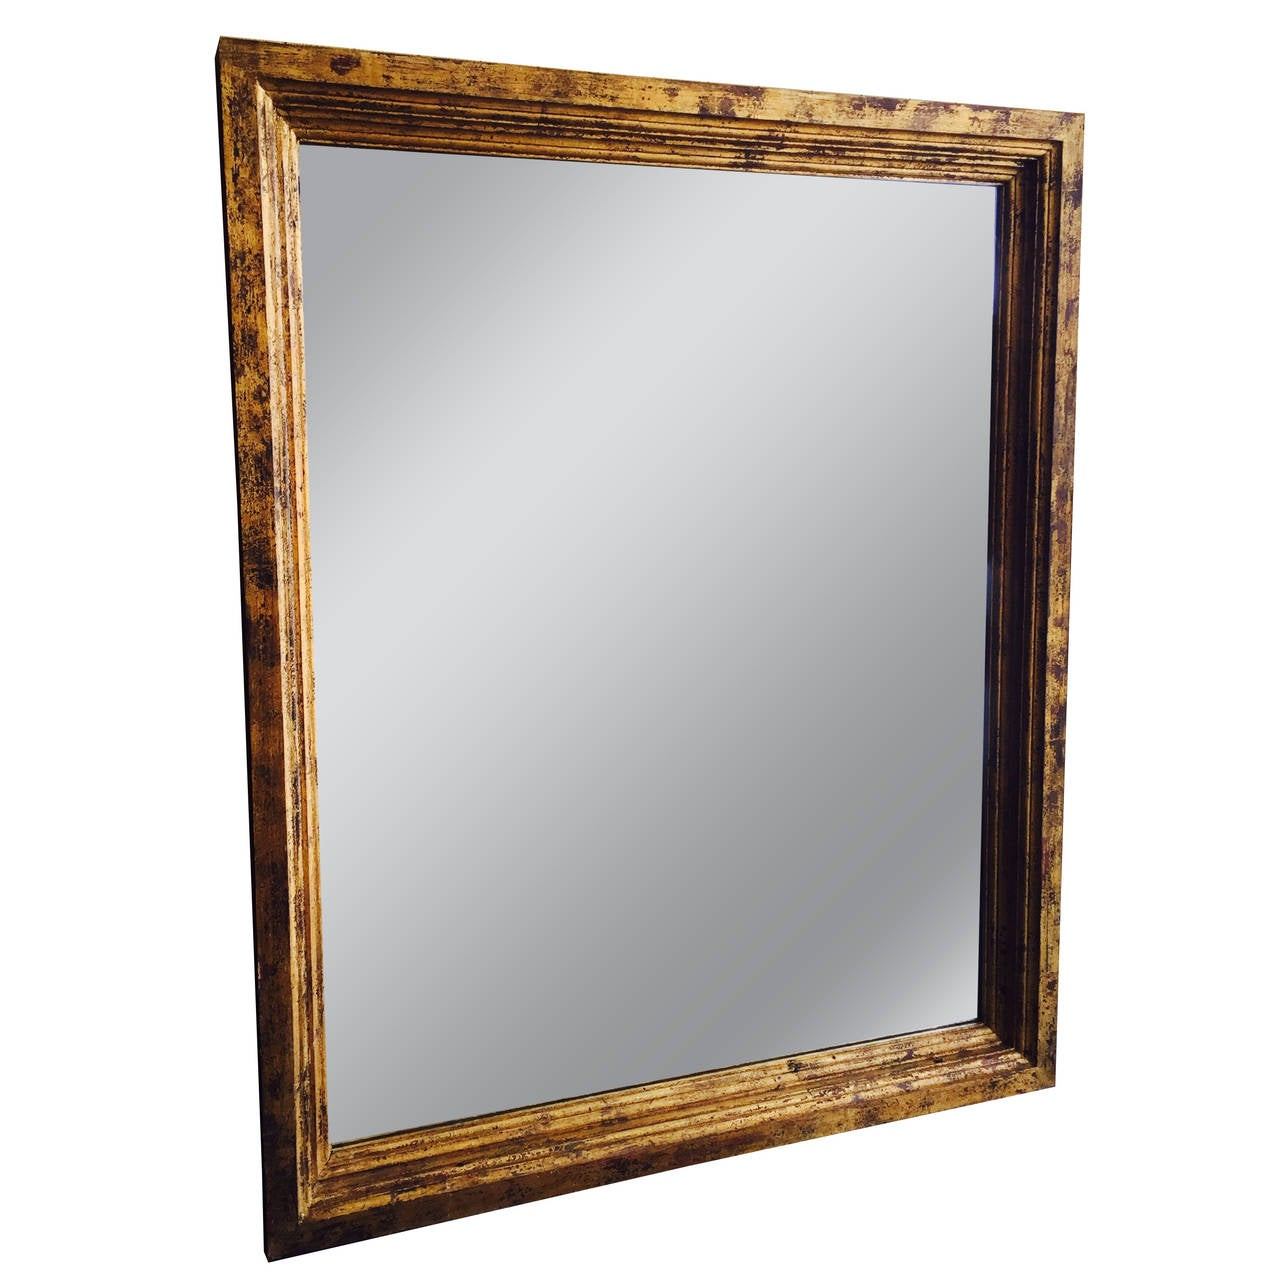 Oversized guilded wood full length floor mirror at 1stdibs for Oversized mirror